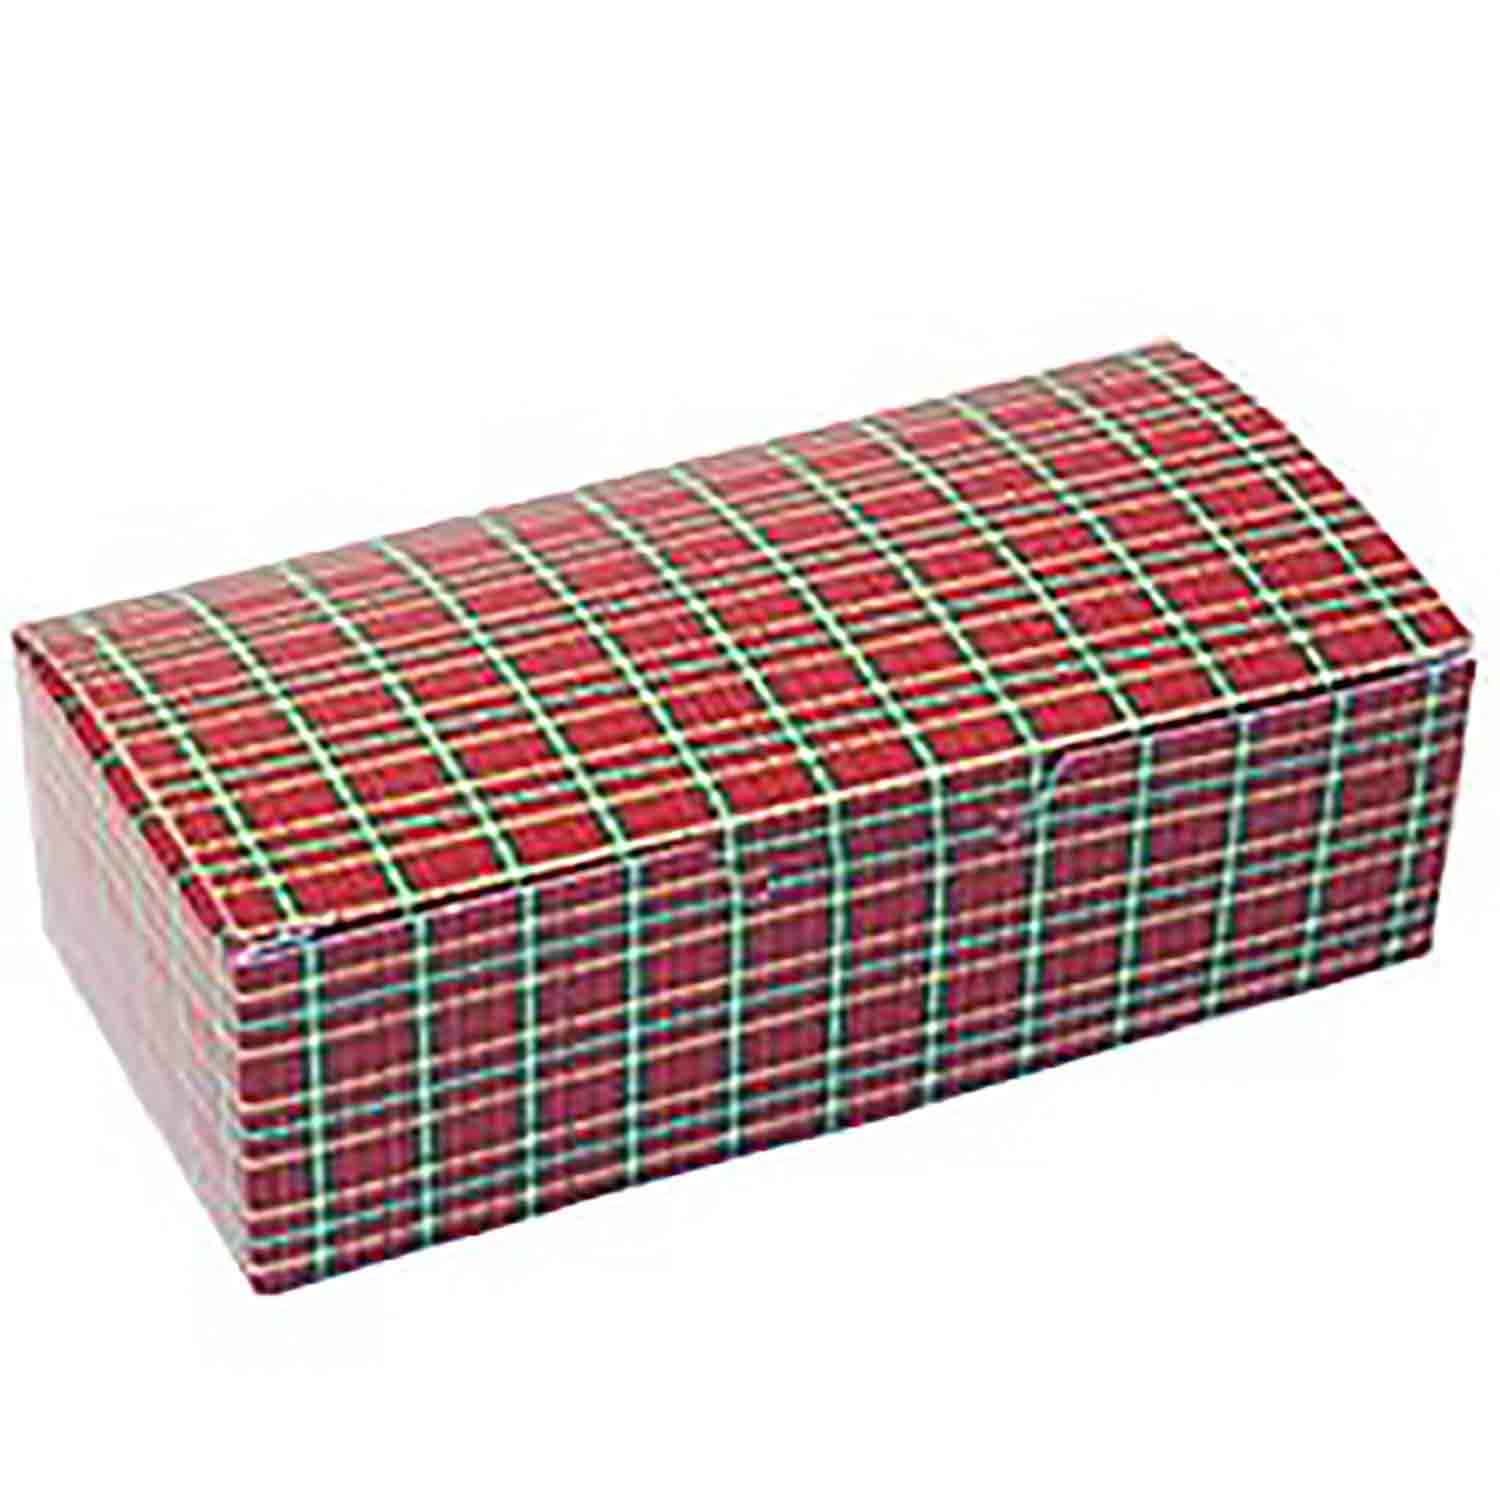 1/4 lb. Plaid Candy Box